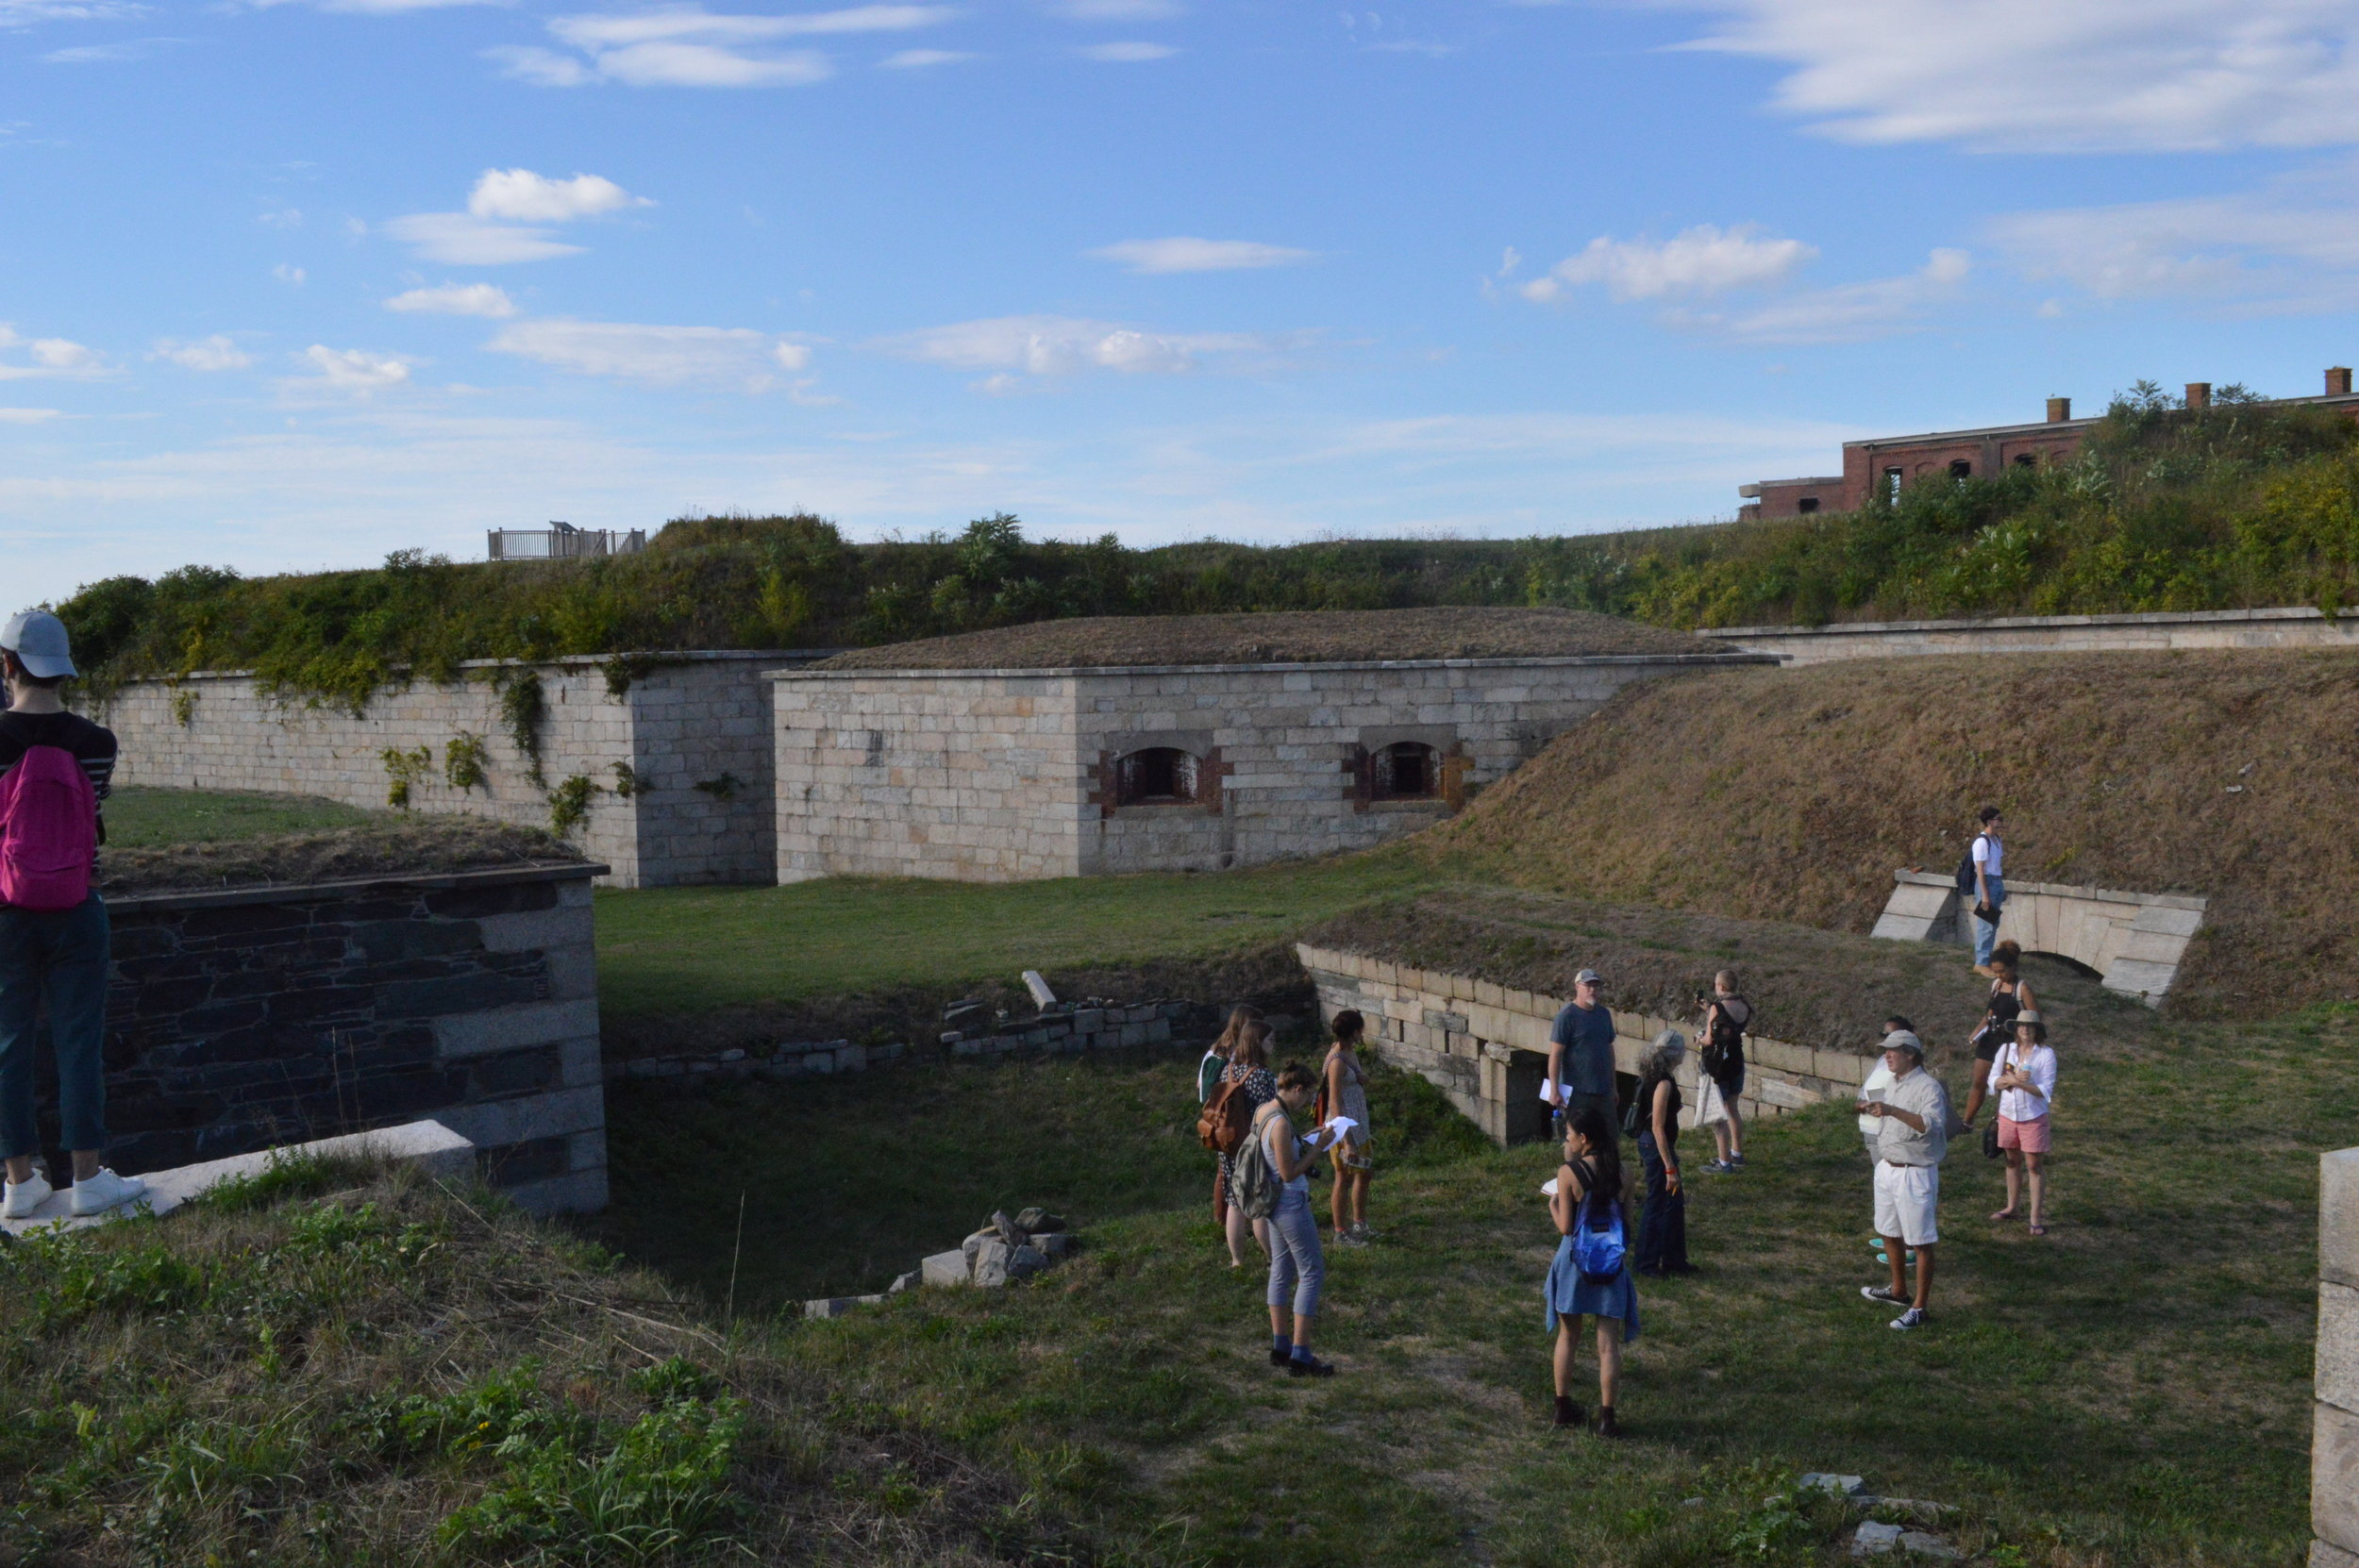 Reverberations - Fort Adams, Newport, RI